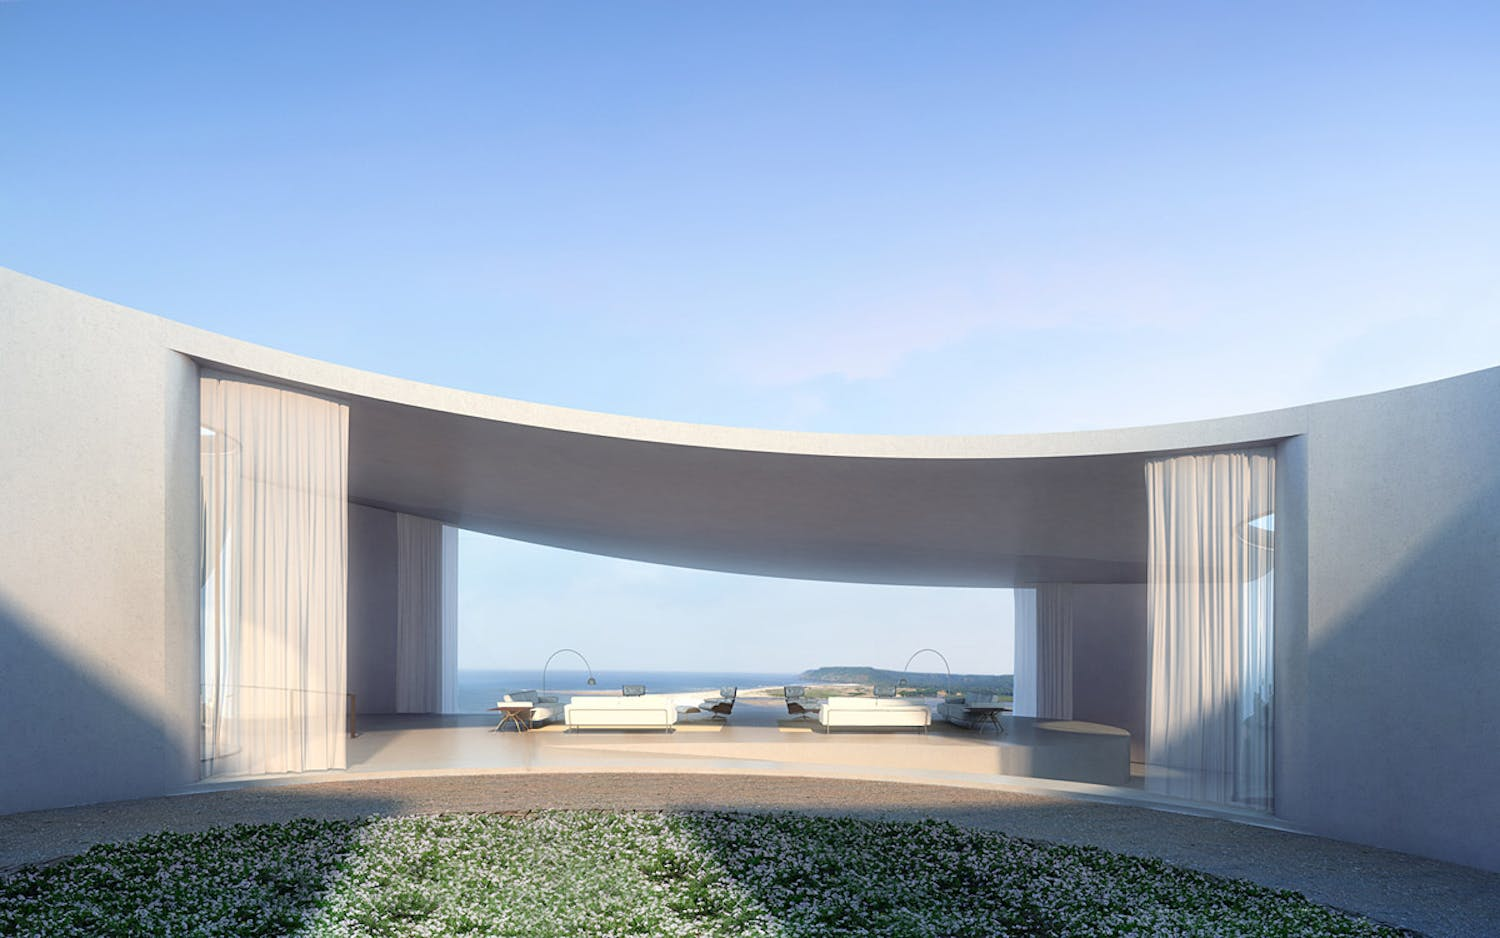 aarvli resort by serie architects starts construction in. Black Bedroom Furniture Sets. Home Design Ideas